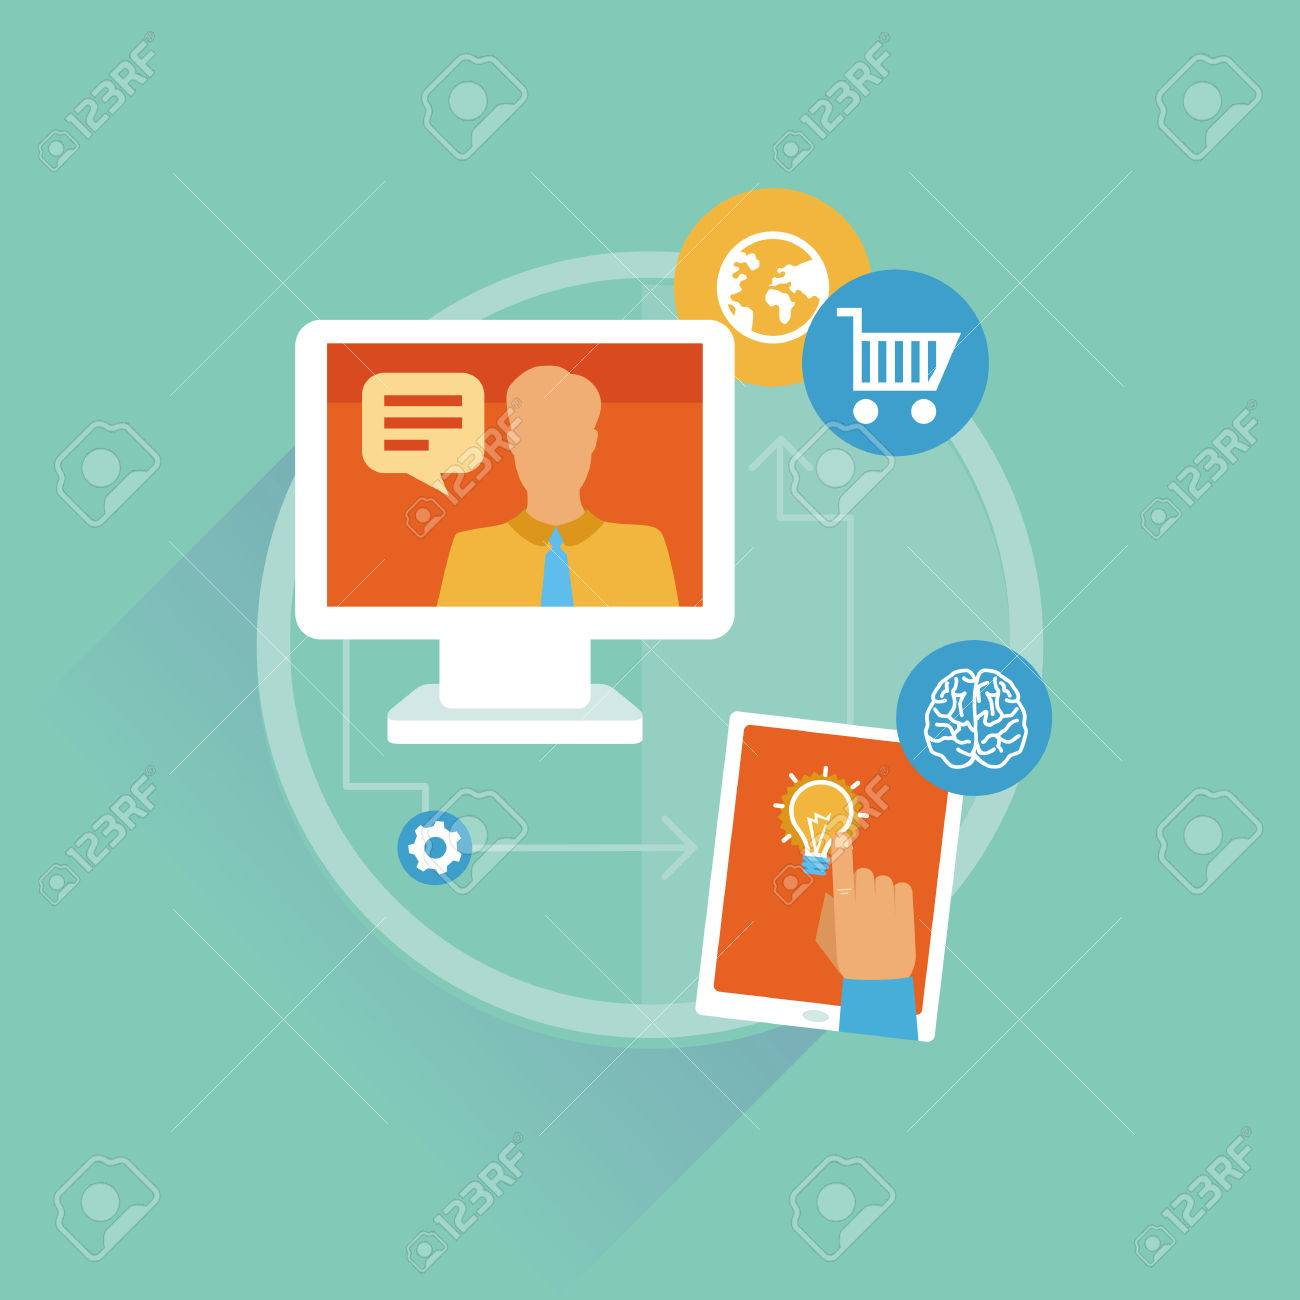 Vector freelance work progress - job inquiry, payment and development icons Stock Vector - 22677464